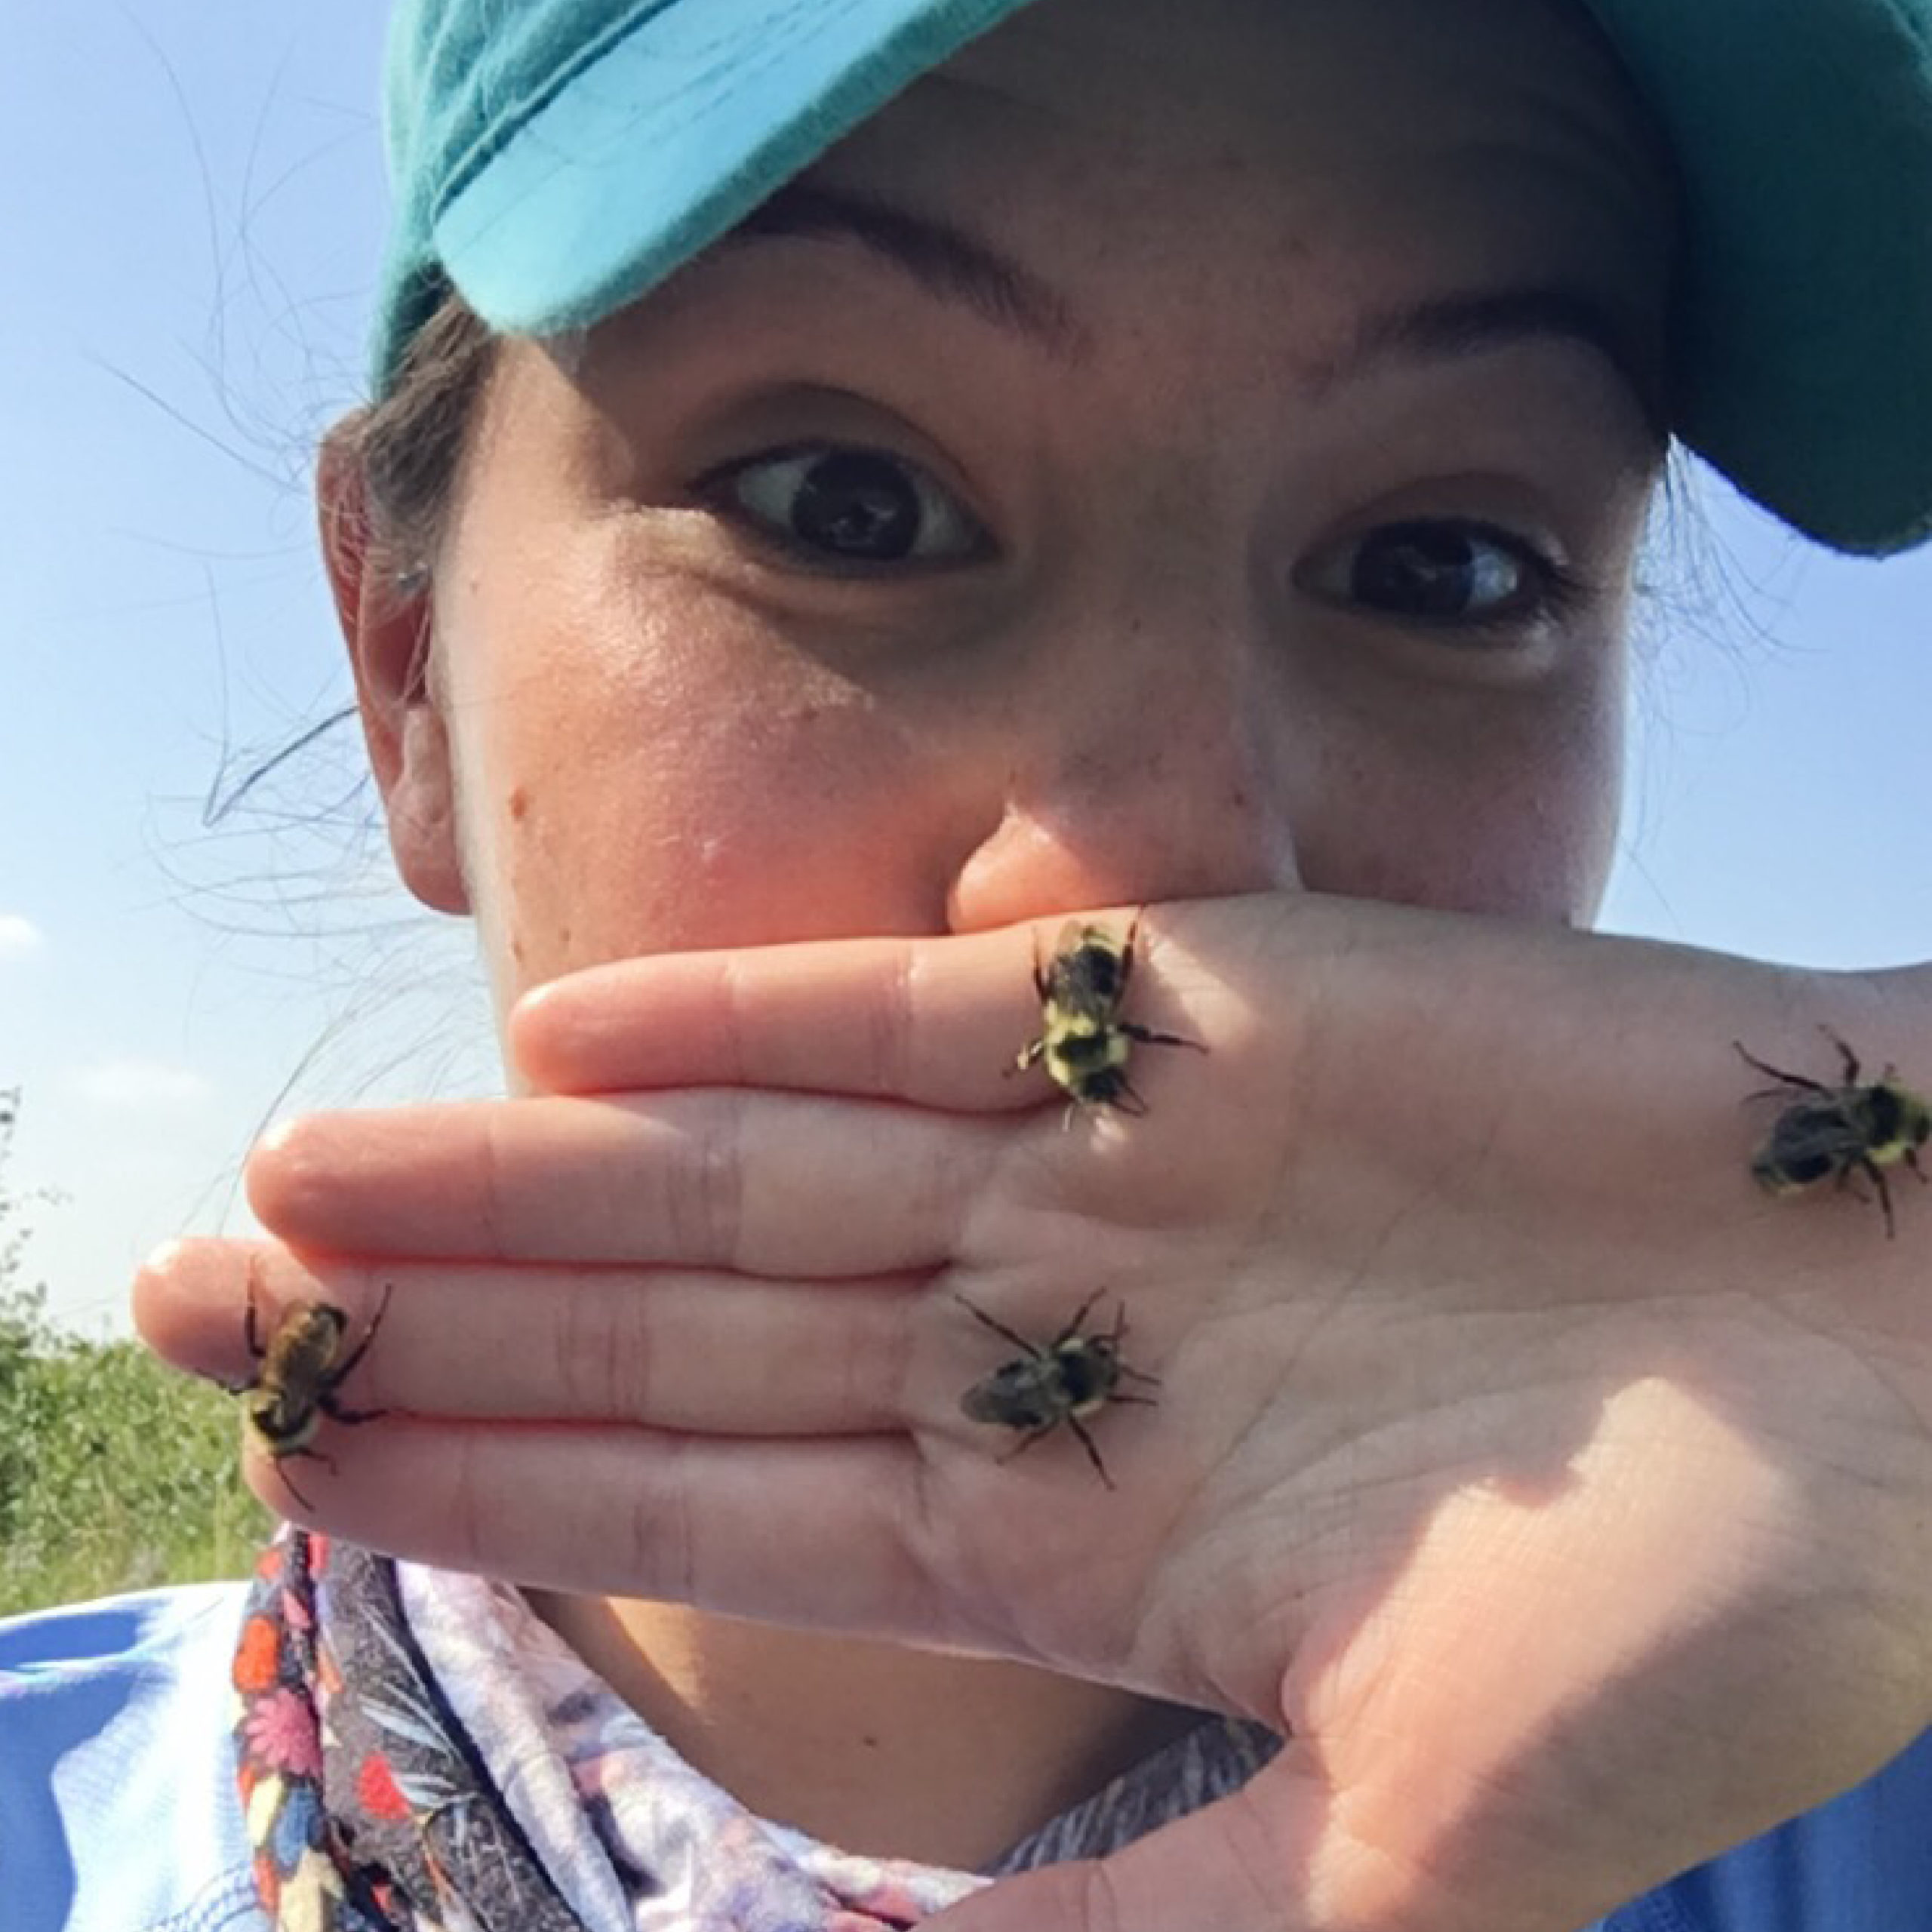 Native pollinator lead biologist Genevieve Rowe sharing her love of bumble bees.